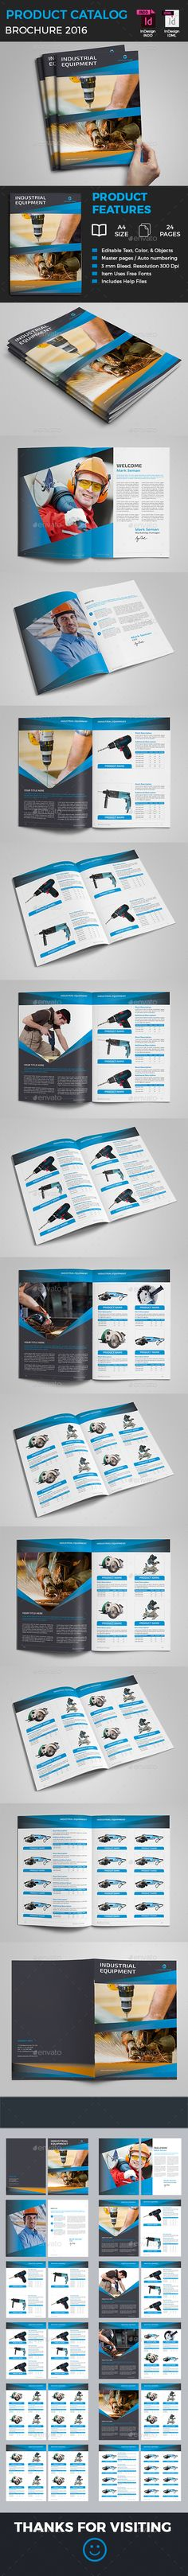 Product Catalog Brochure | Product Catalog, Brochures And Catalog